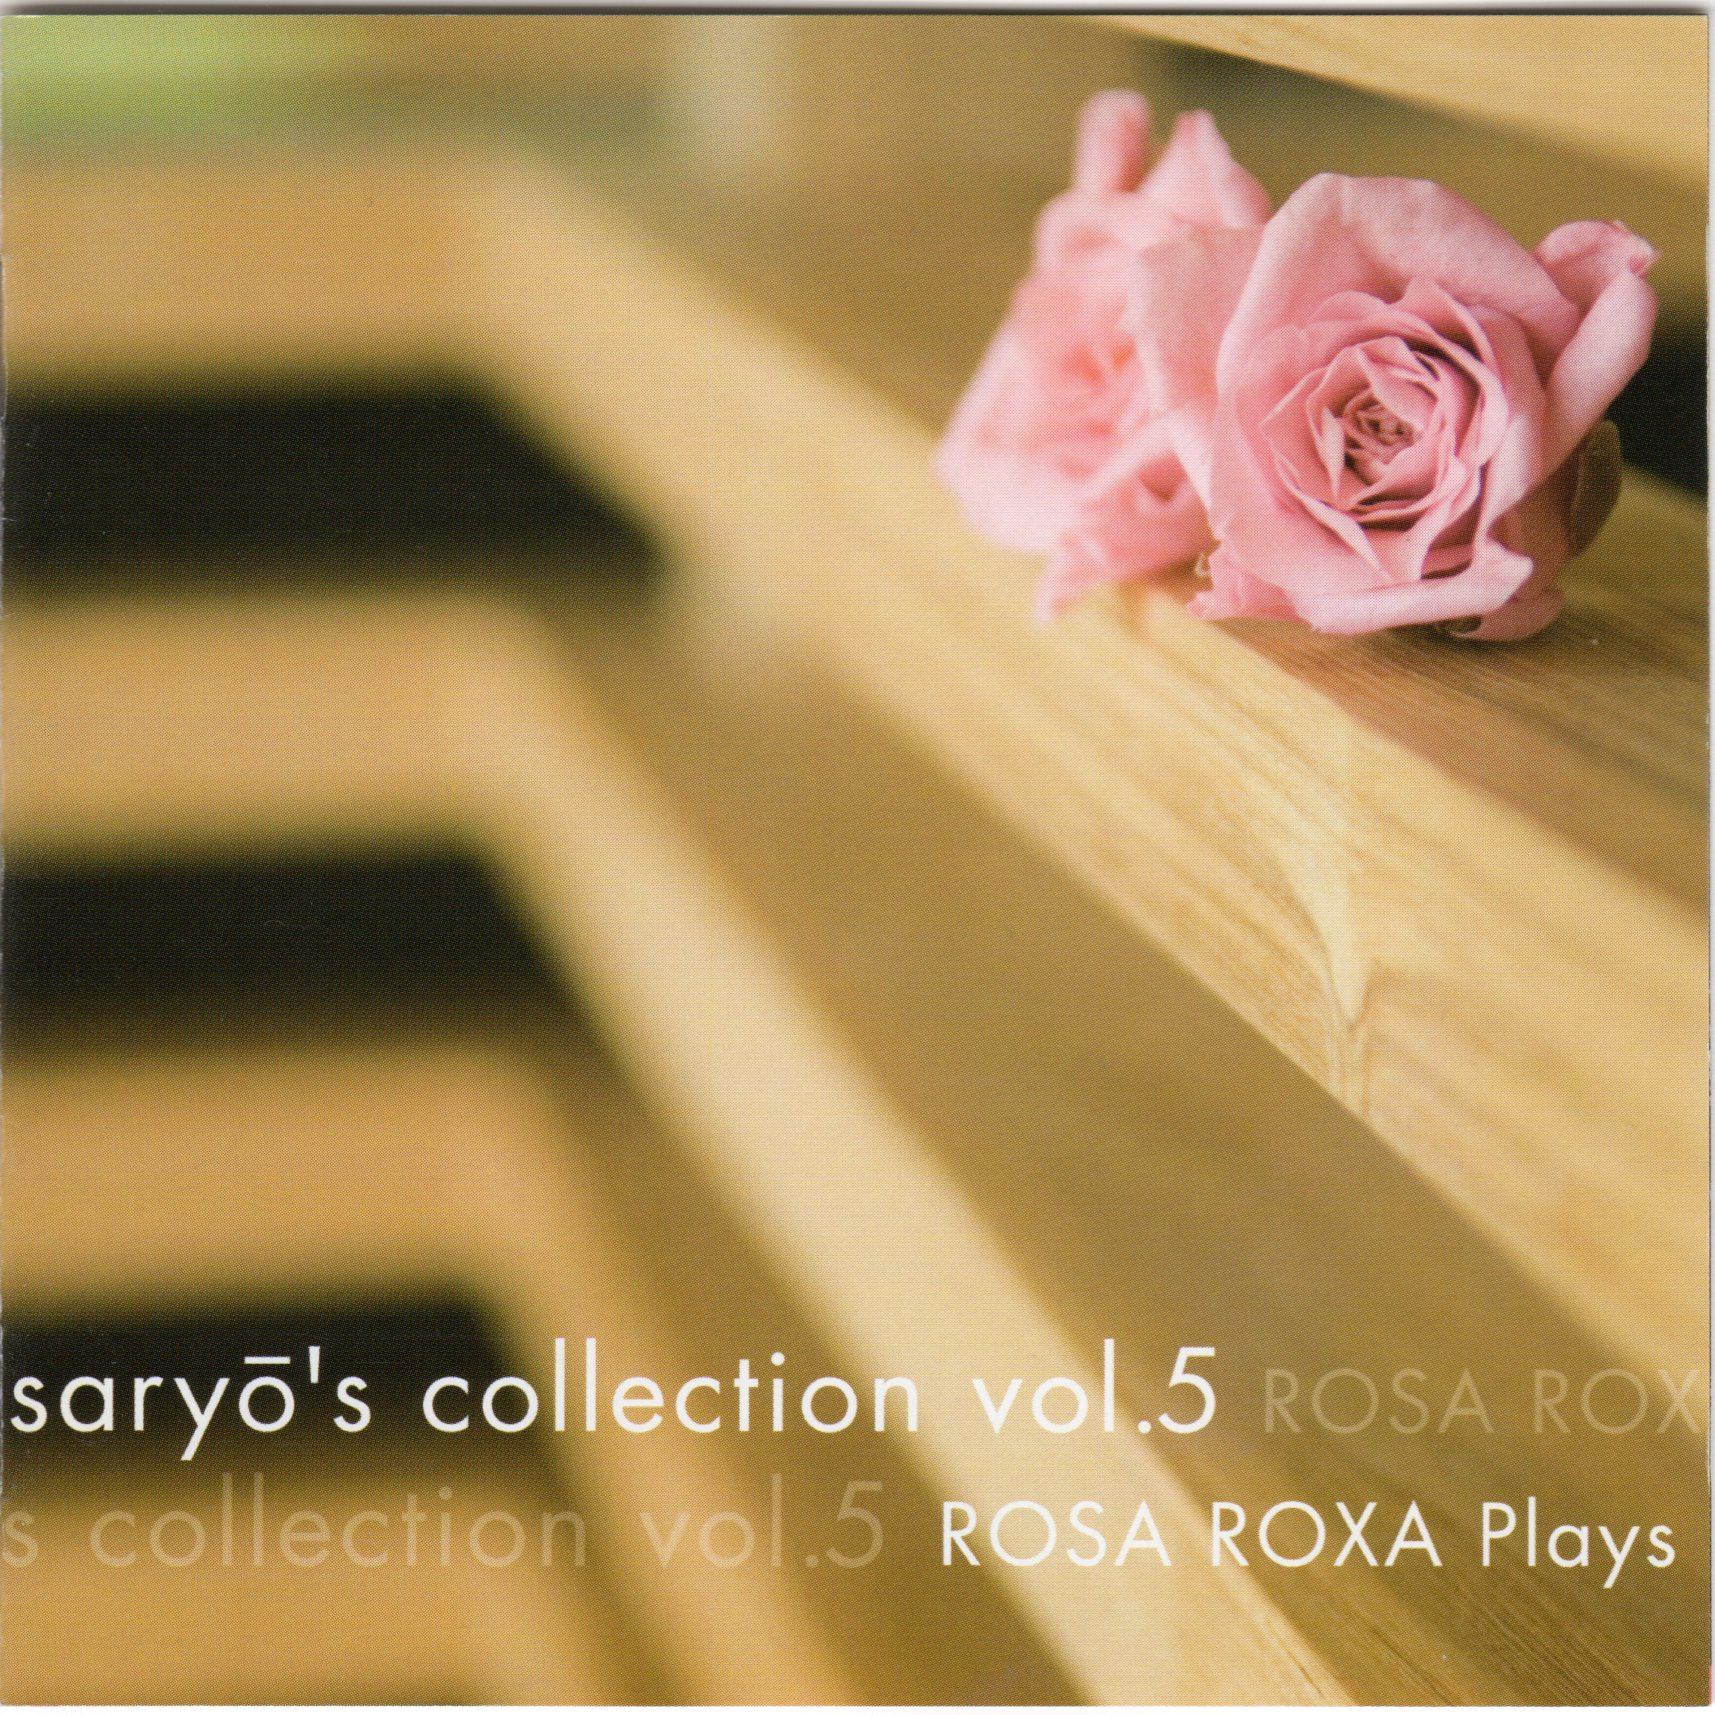 saryo's collection vol.5